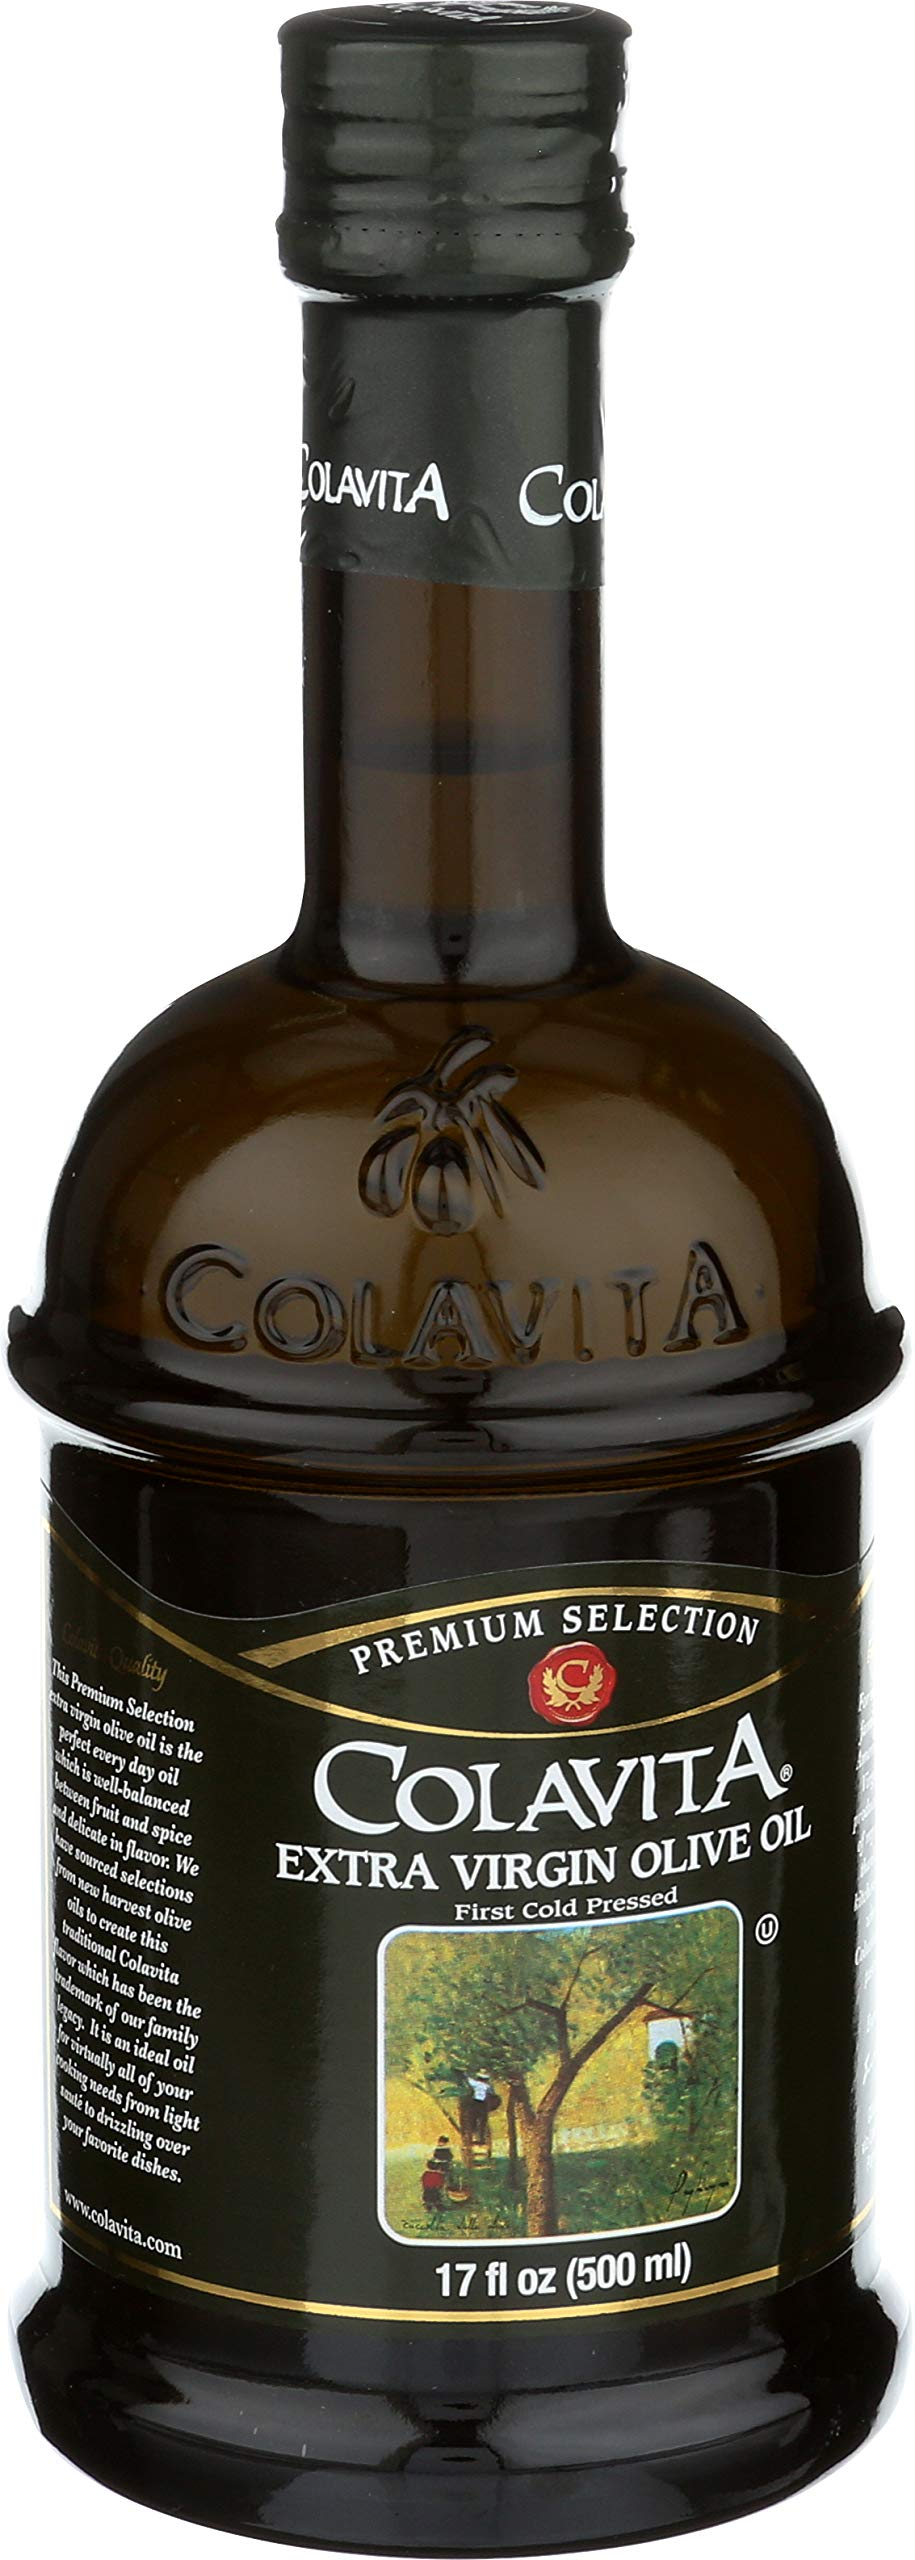 Colavita Extra Virgin Olive Oil Special, 17 Ounce (Pack of 2) by Colavita (Image #8)